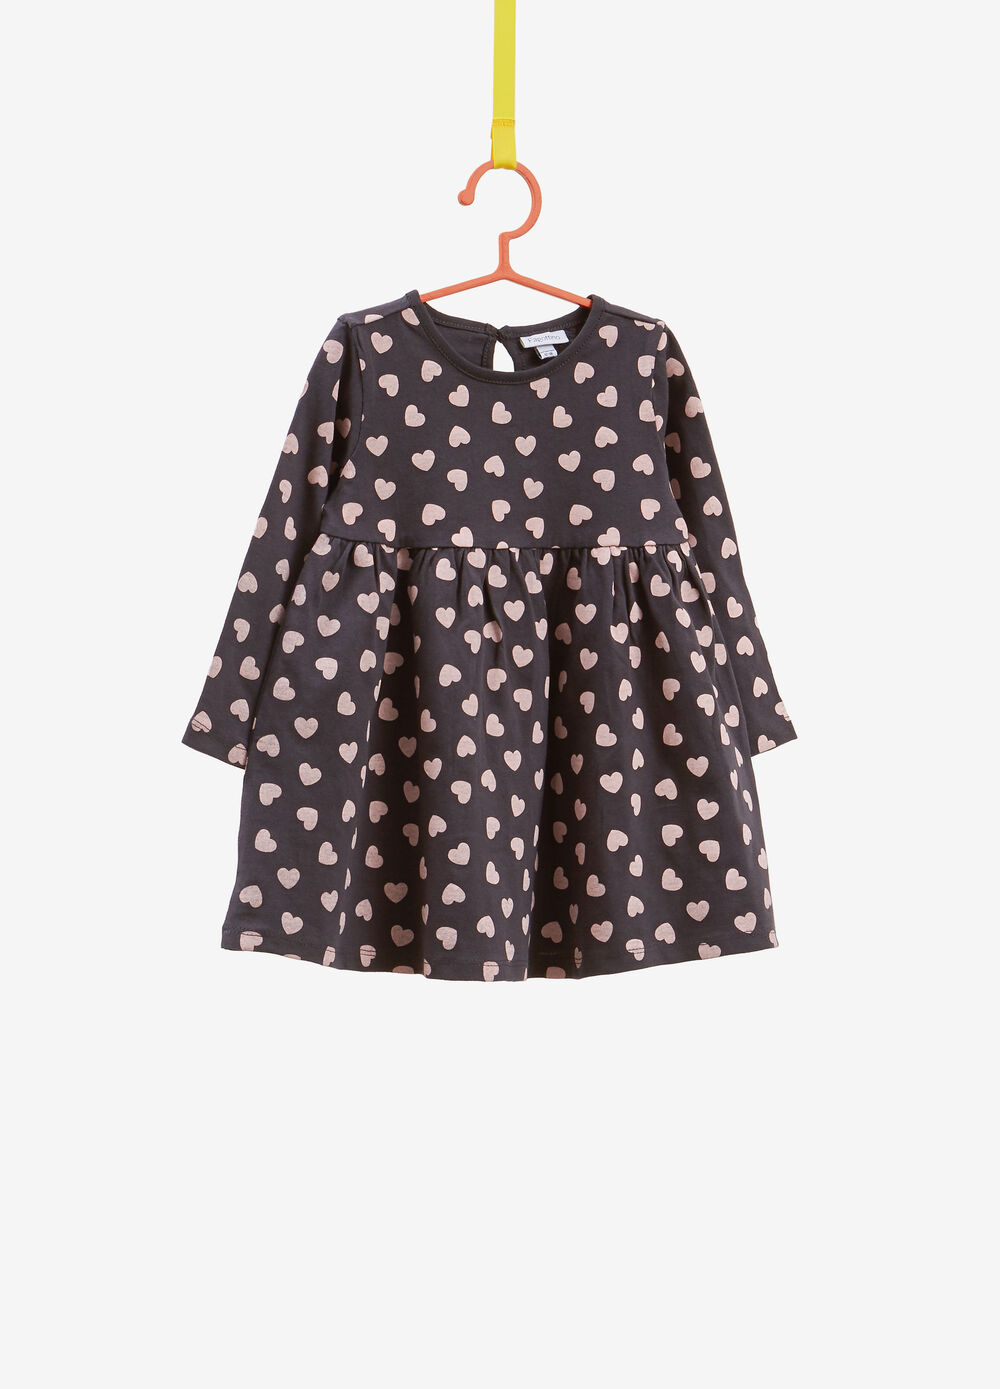 100% cotton dress with hearts print